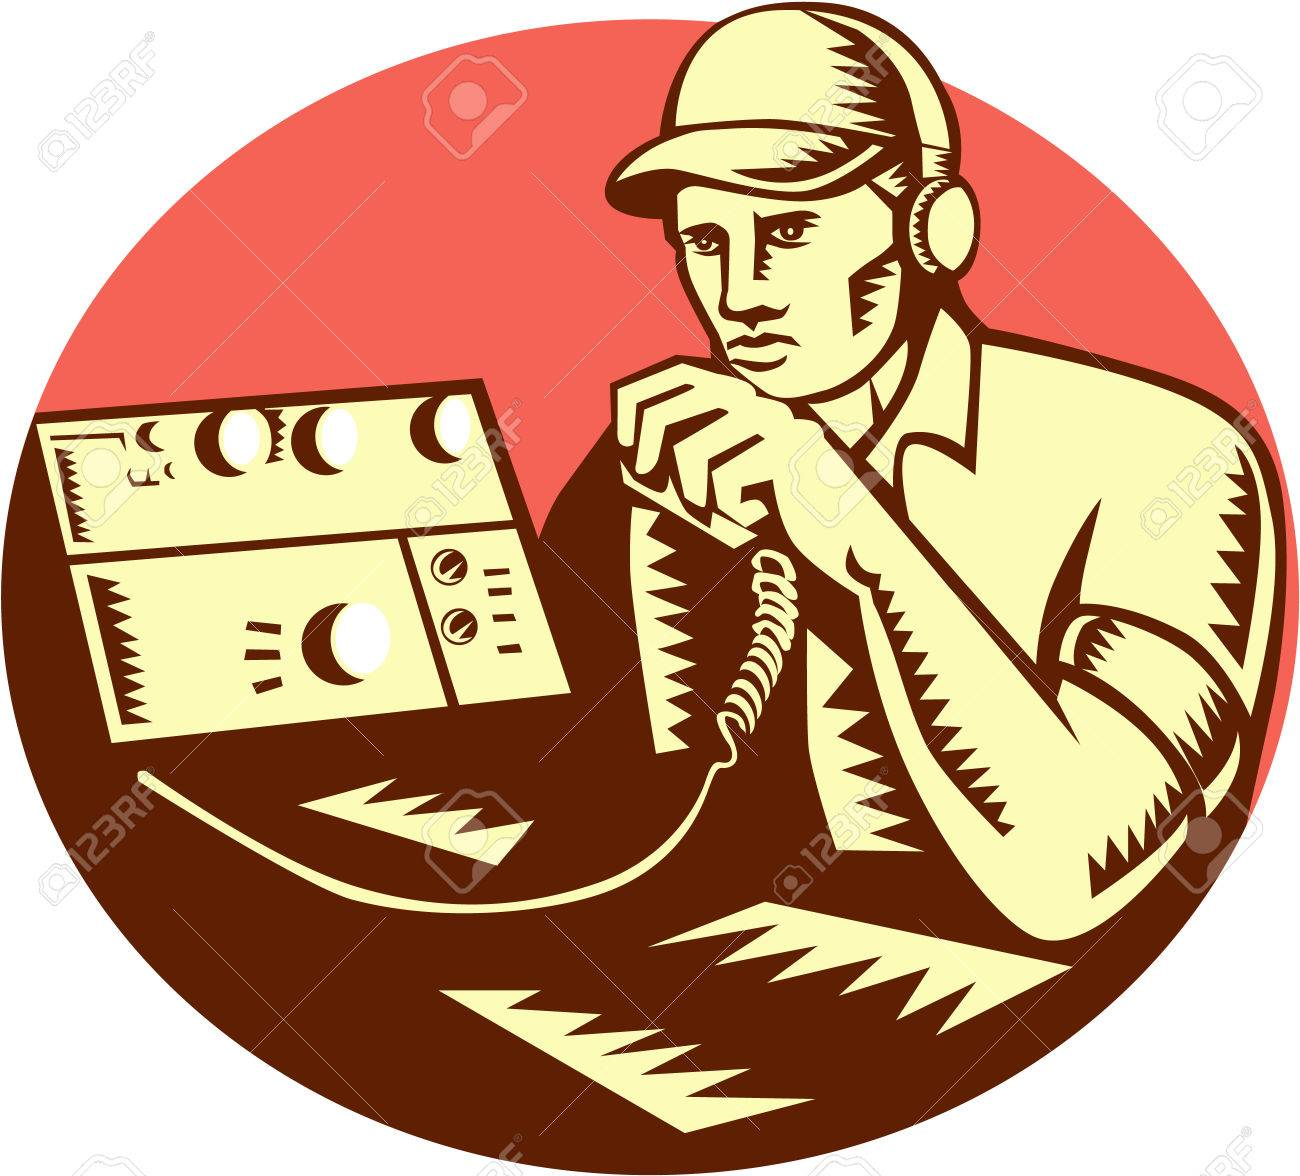 Illustration of a ham radio operator with headset and talking...